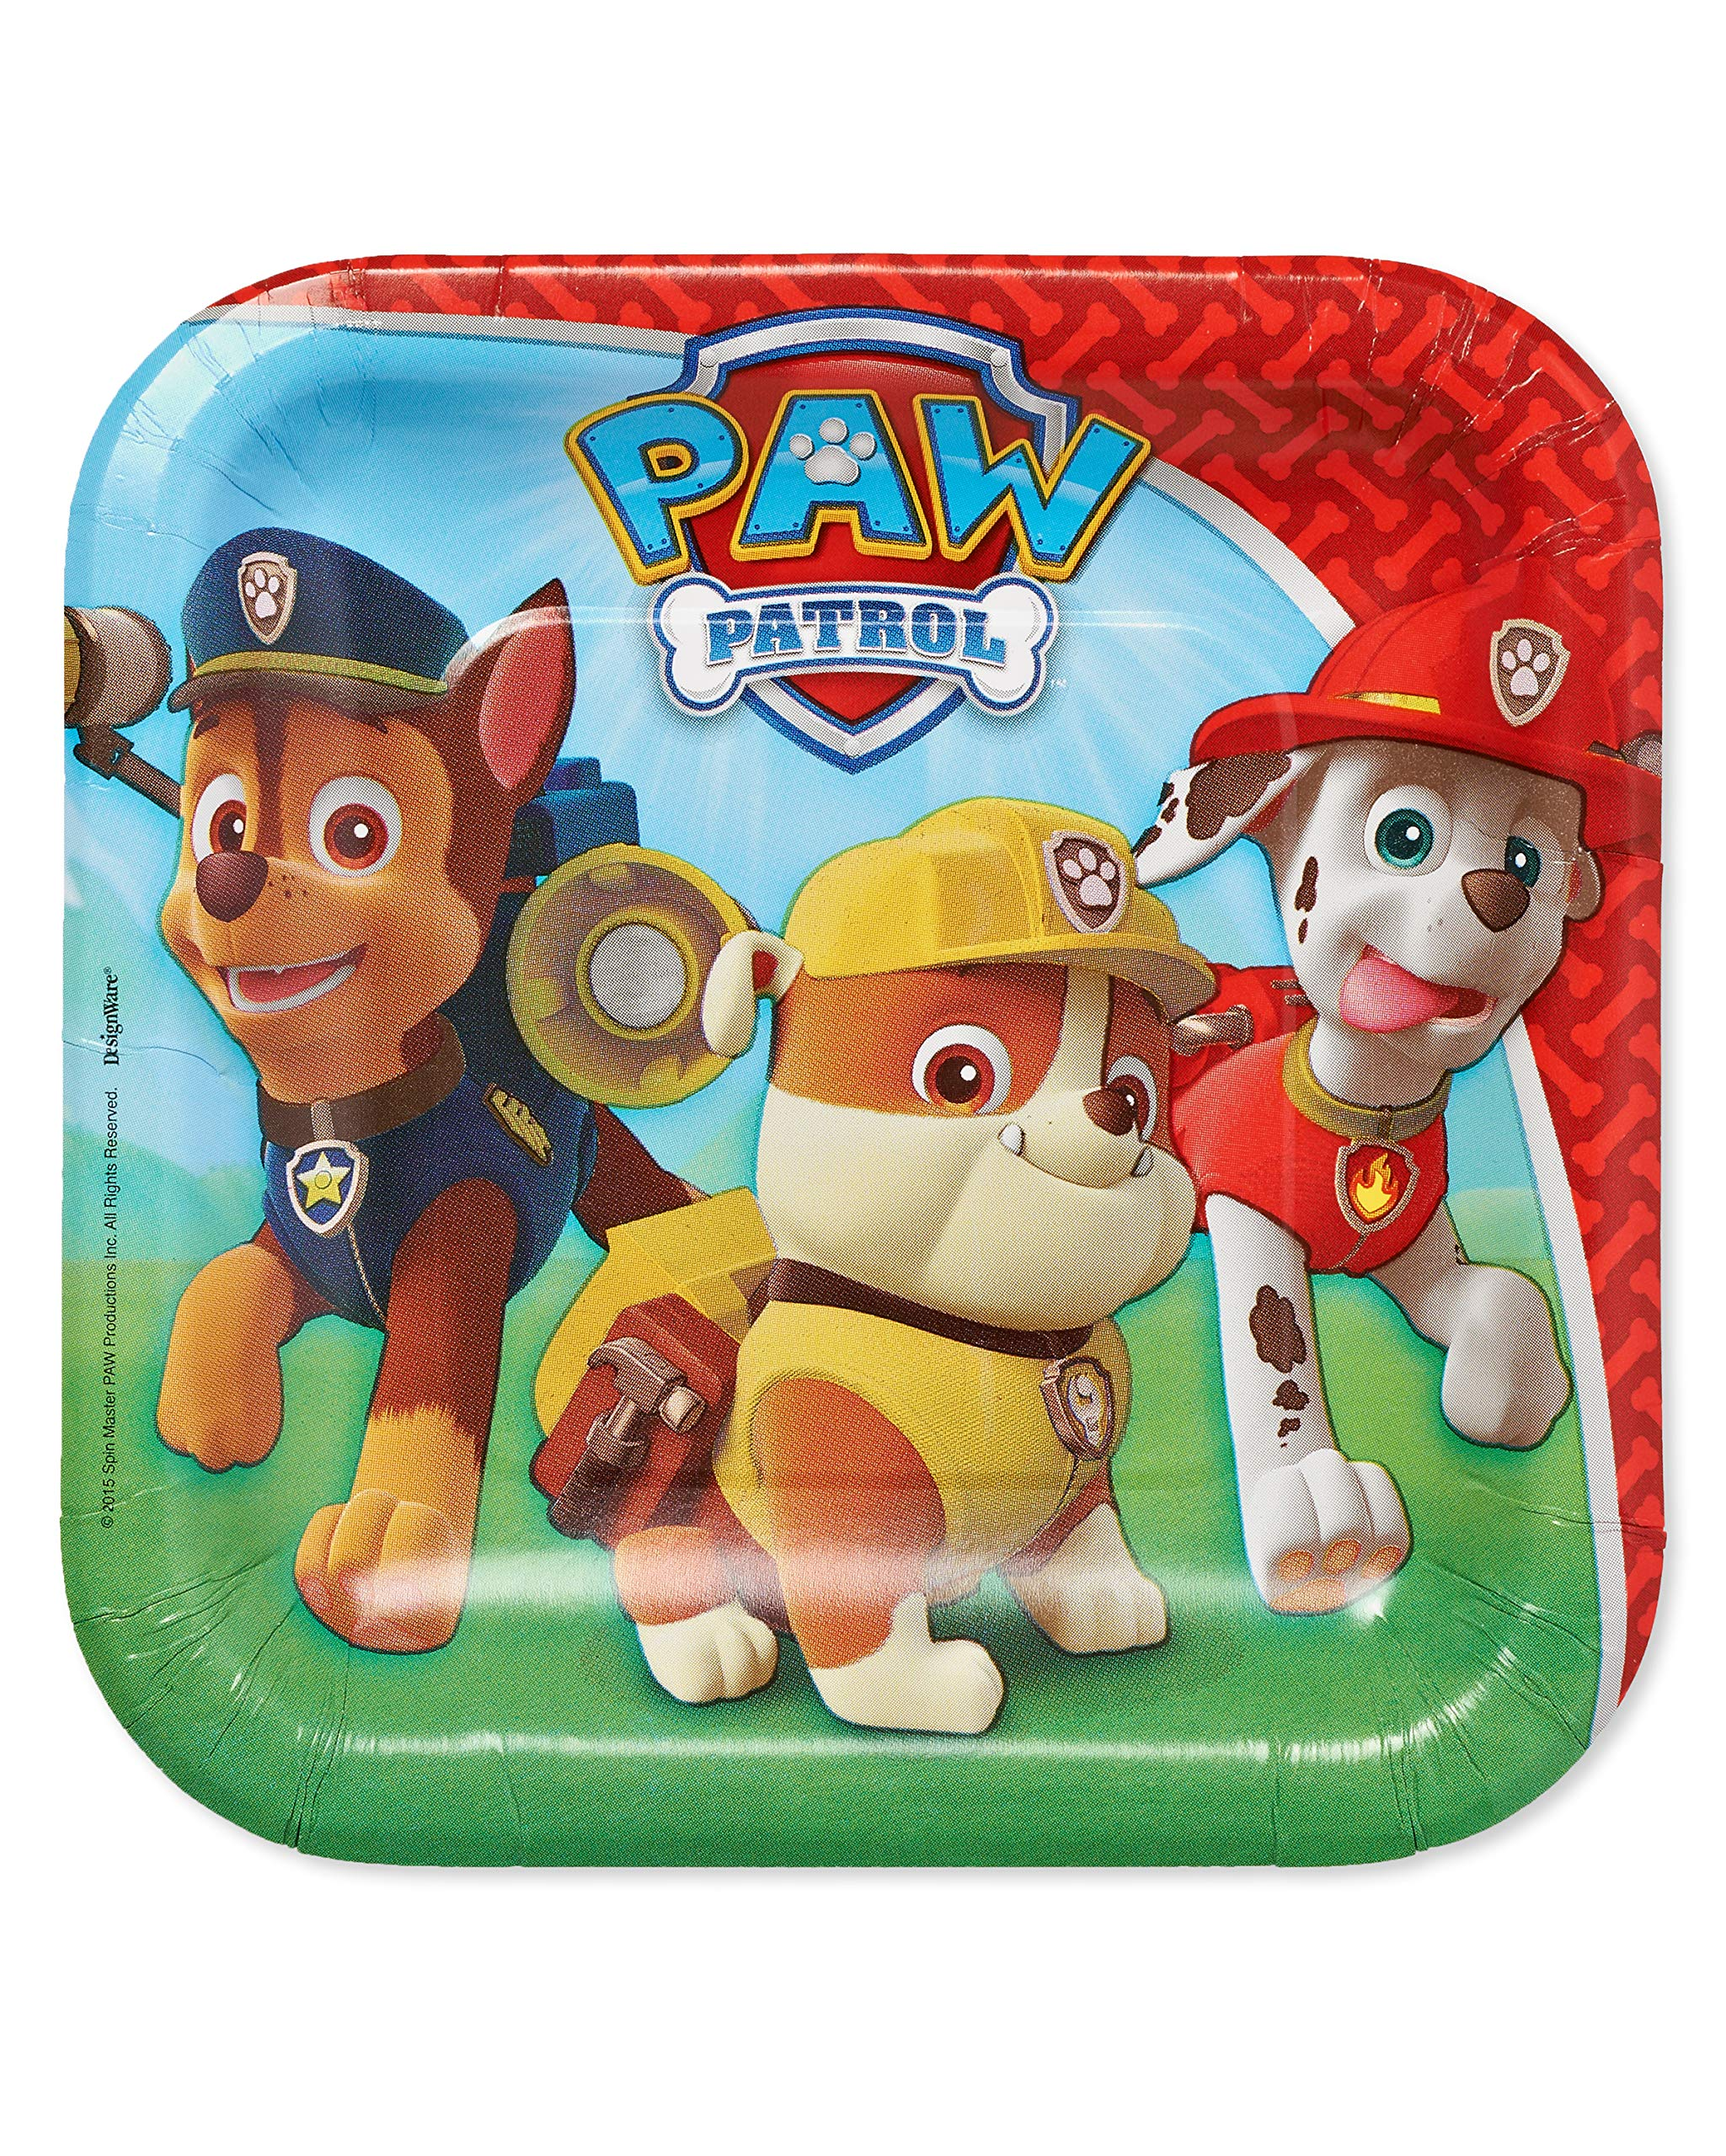 American Greetings Paw Patrol Paper Dessert Plates for Kids (8-Count)